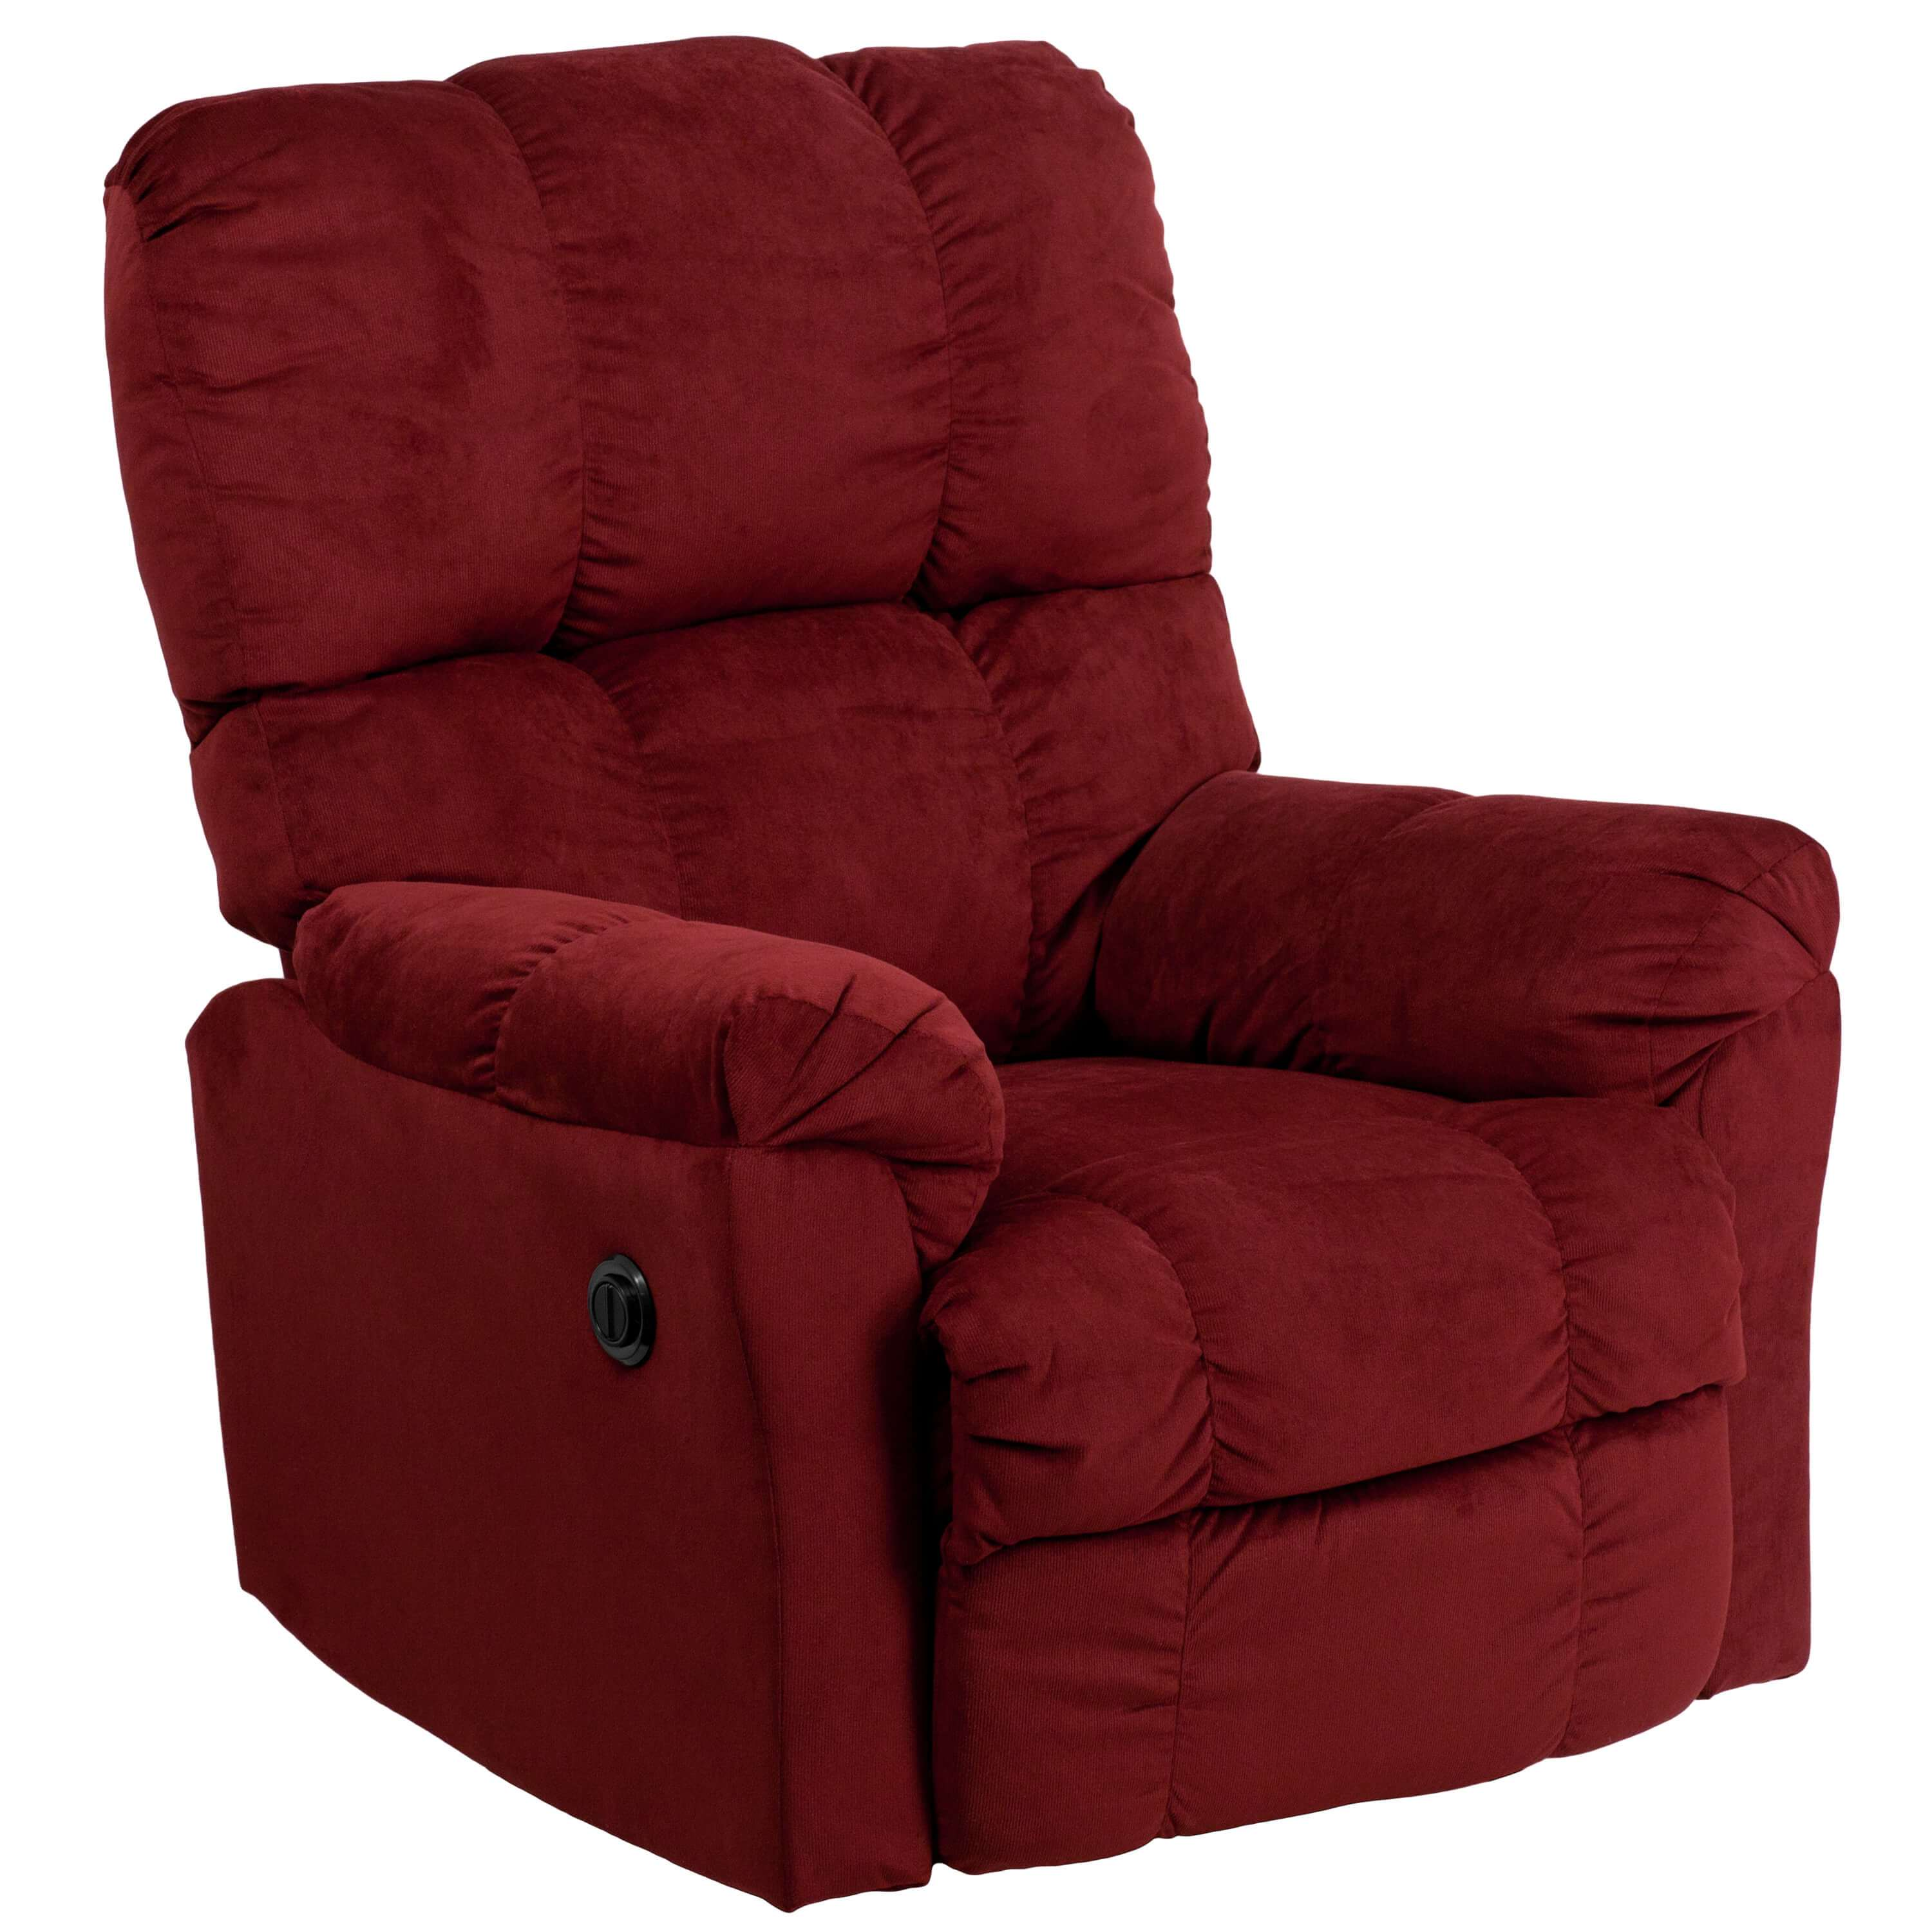 Modern recliner chair CUB AM P9320 4170 GG FLA 1